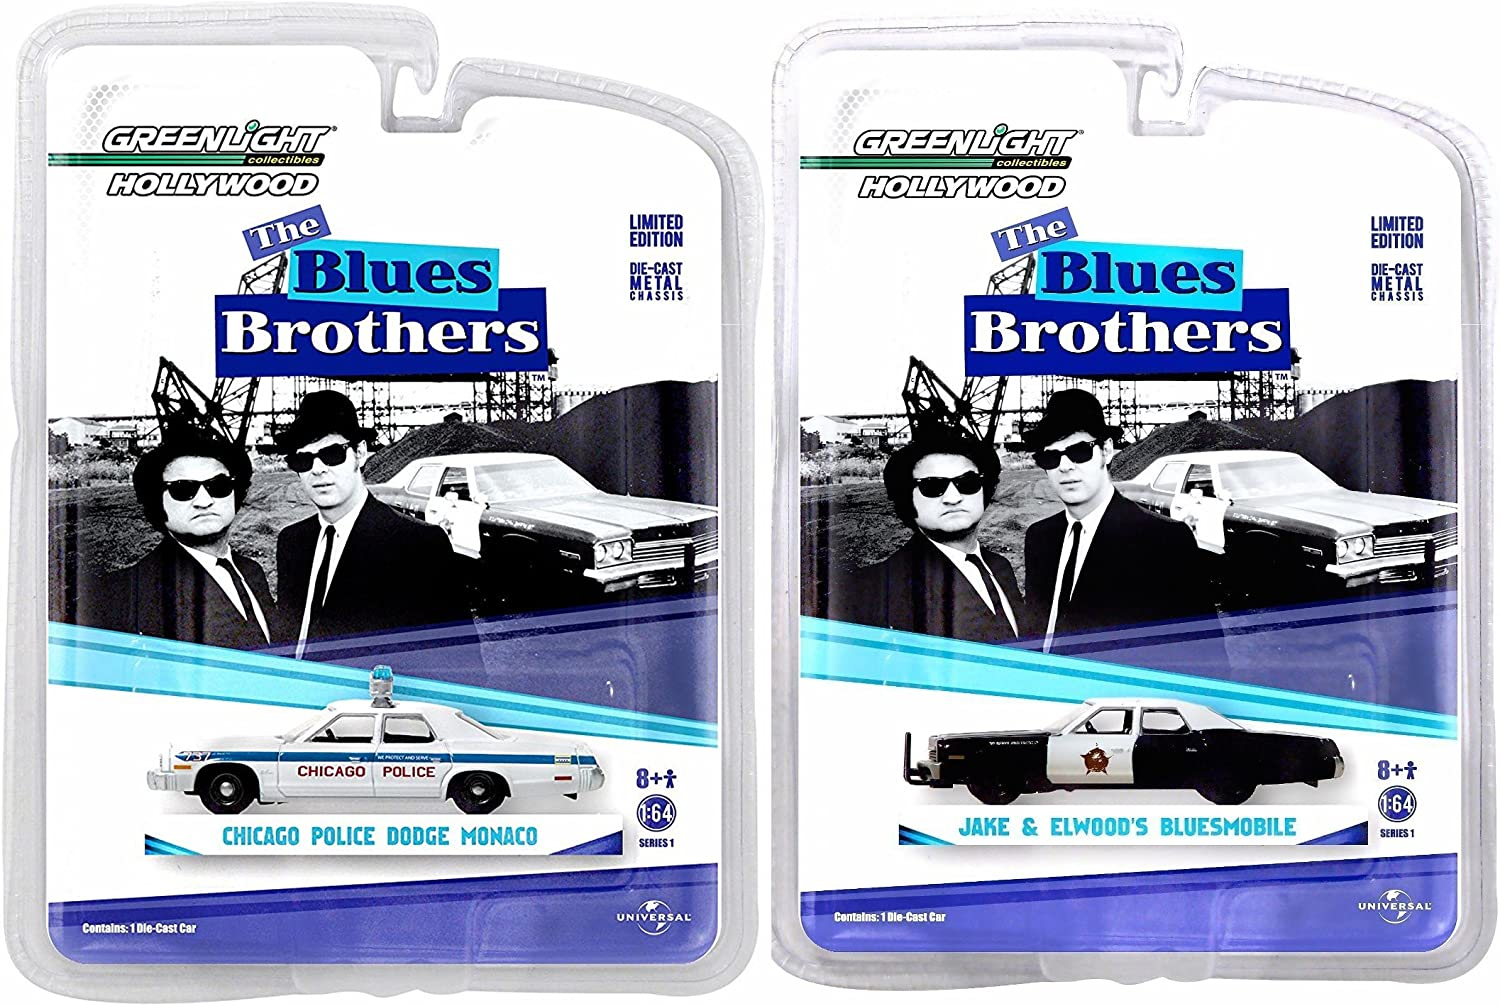 1980 1:64 Scale - 1974 Dodge Monaco Bluesmobile Vehicle GreenLight Collectibles Blues Brothers